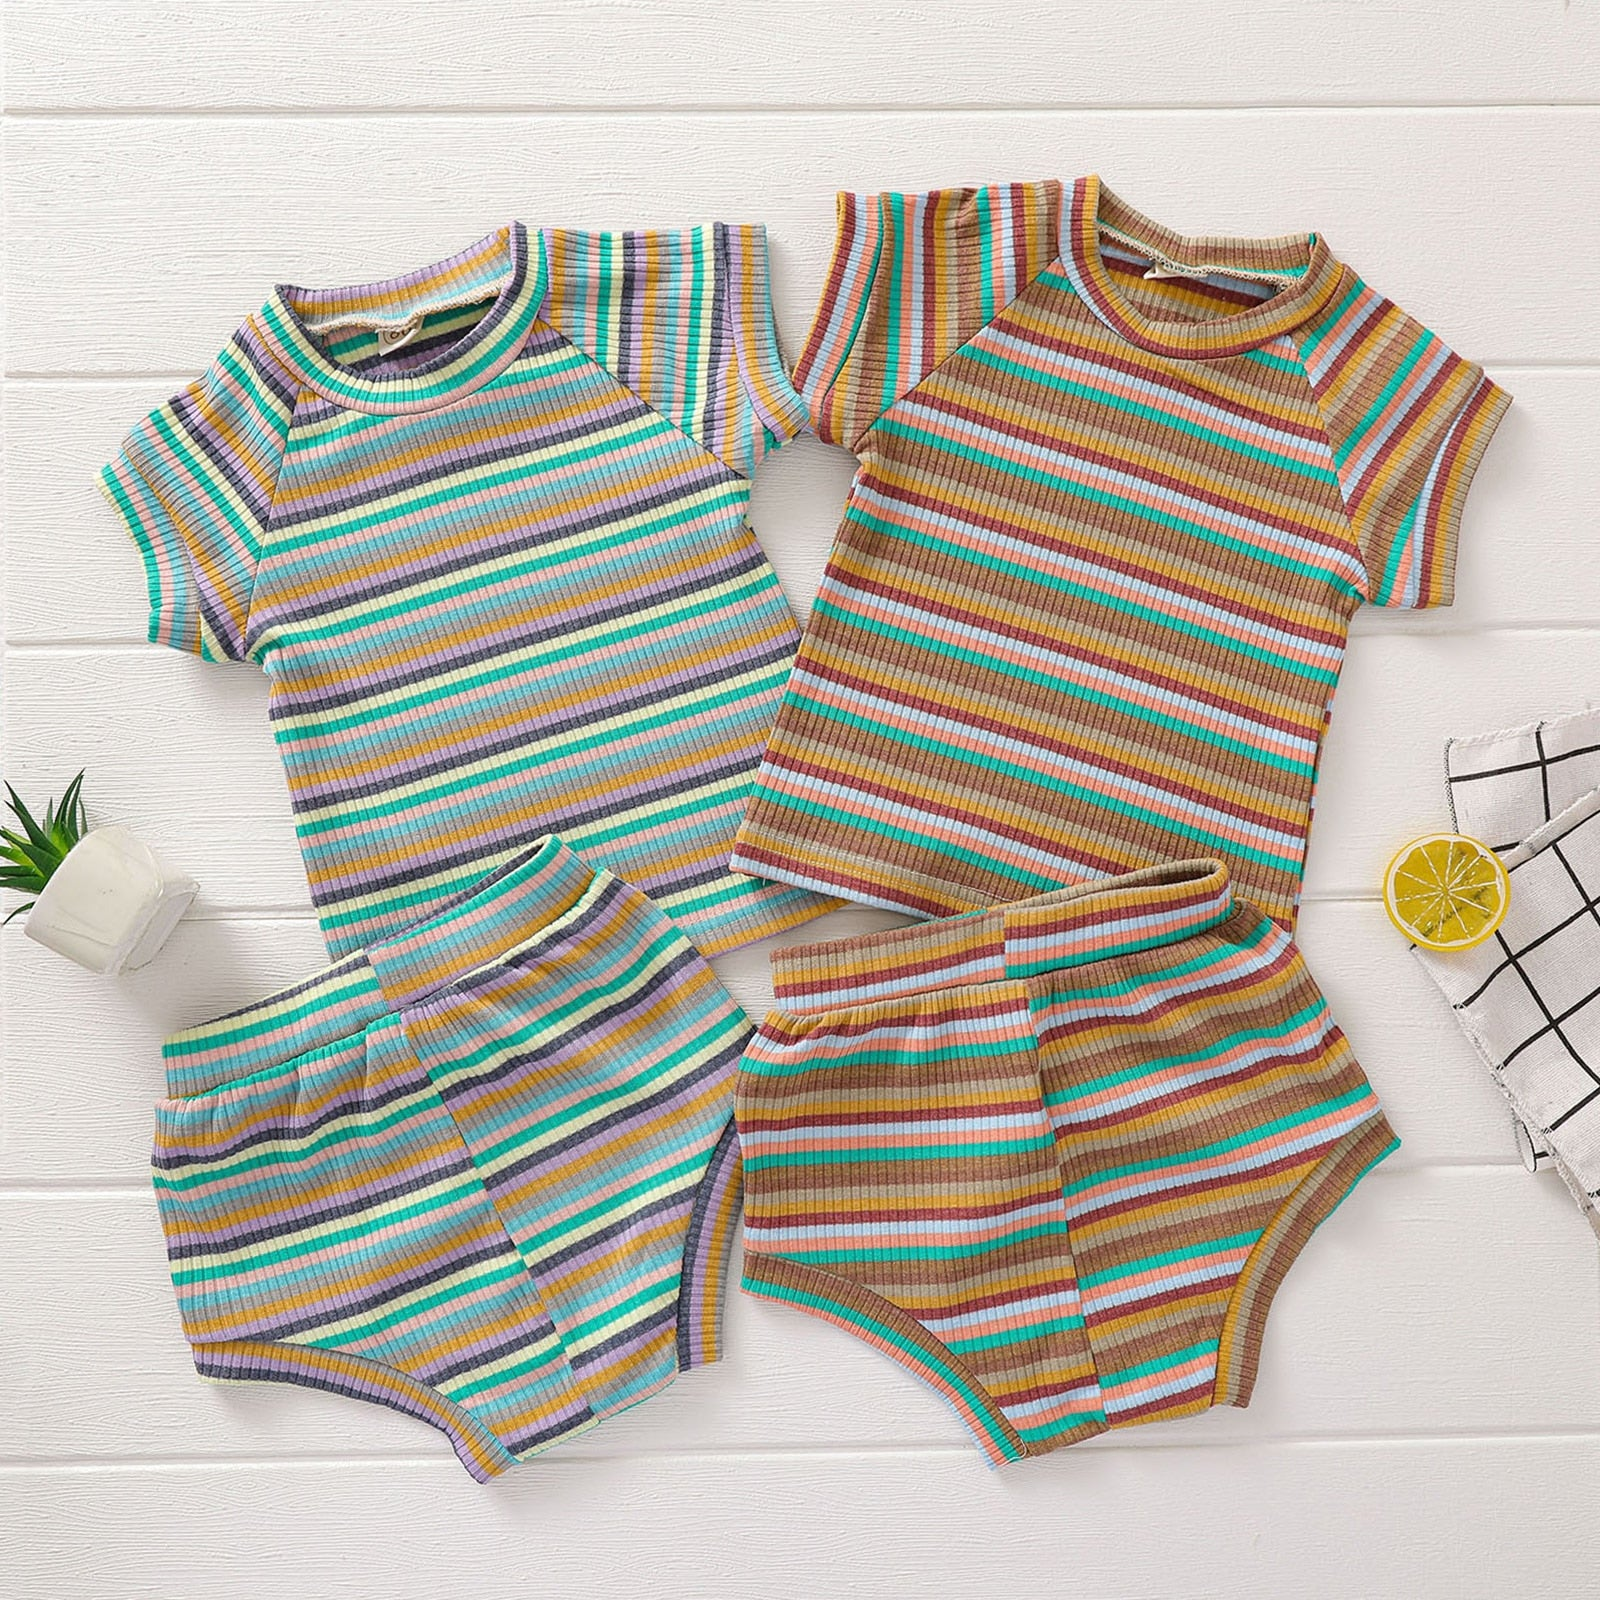 0-3 Years 2 Pcs Newborn Striped Outfits Luxury Baby Boy Girl Casual Short Sleeve Round Neck Pullover + Shorts 2 Colors